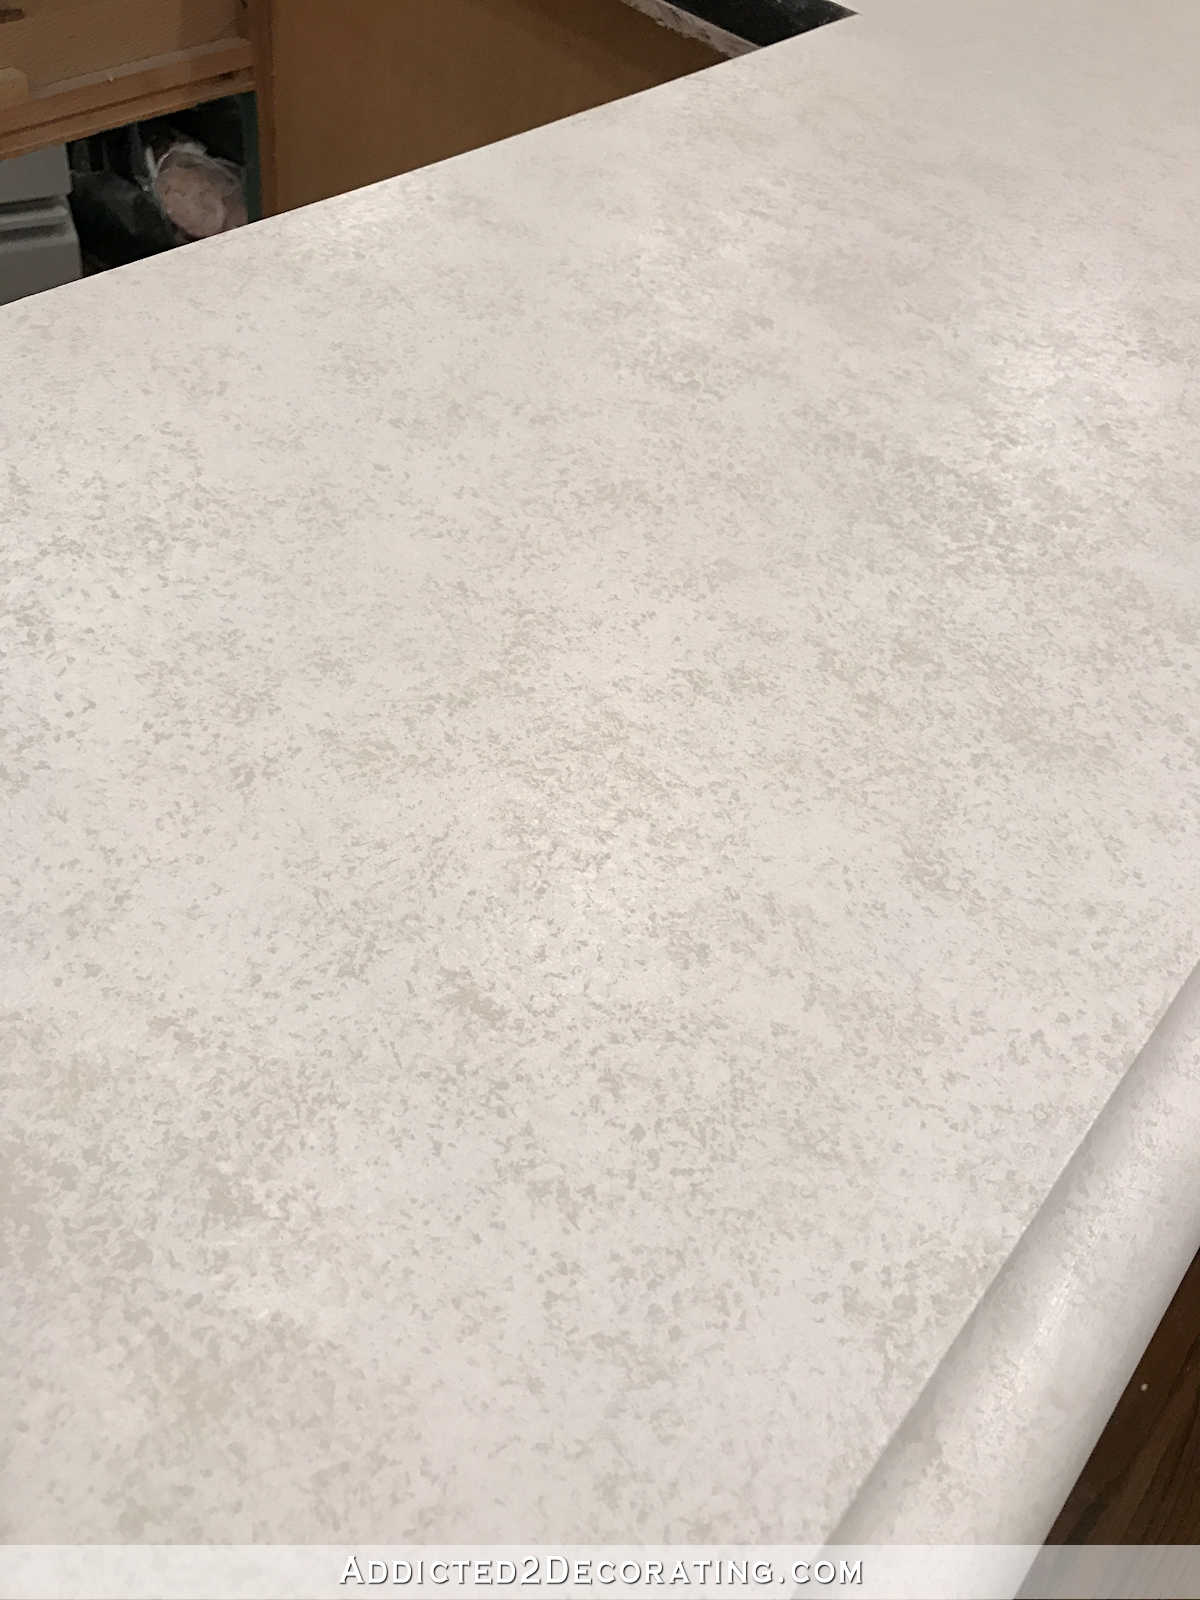 refinishing concrete countertops - 23 - second coat of sponged paint in Behr Polar Bear